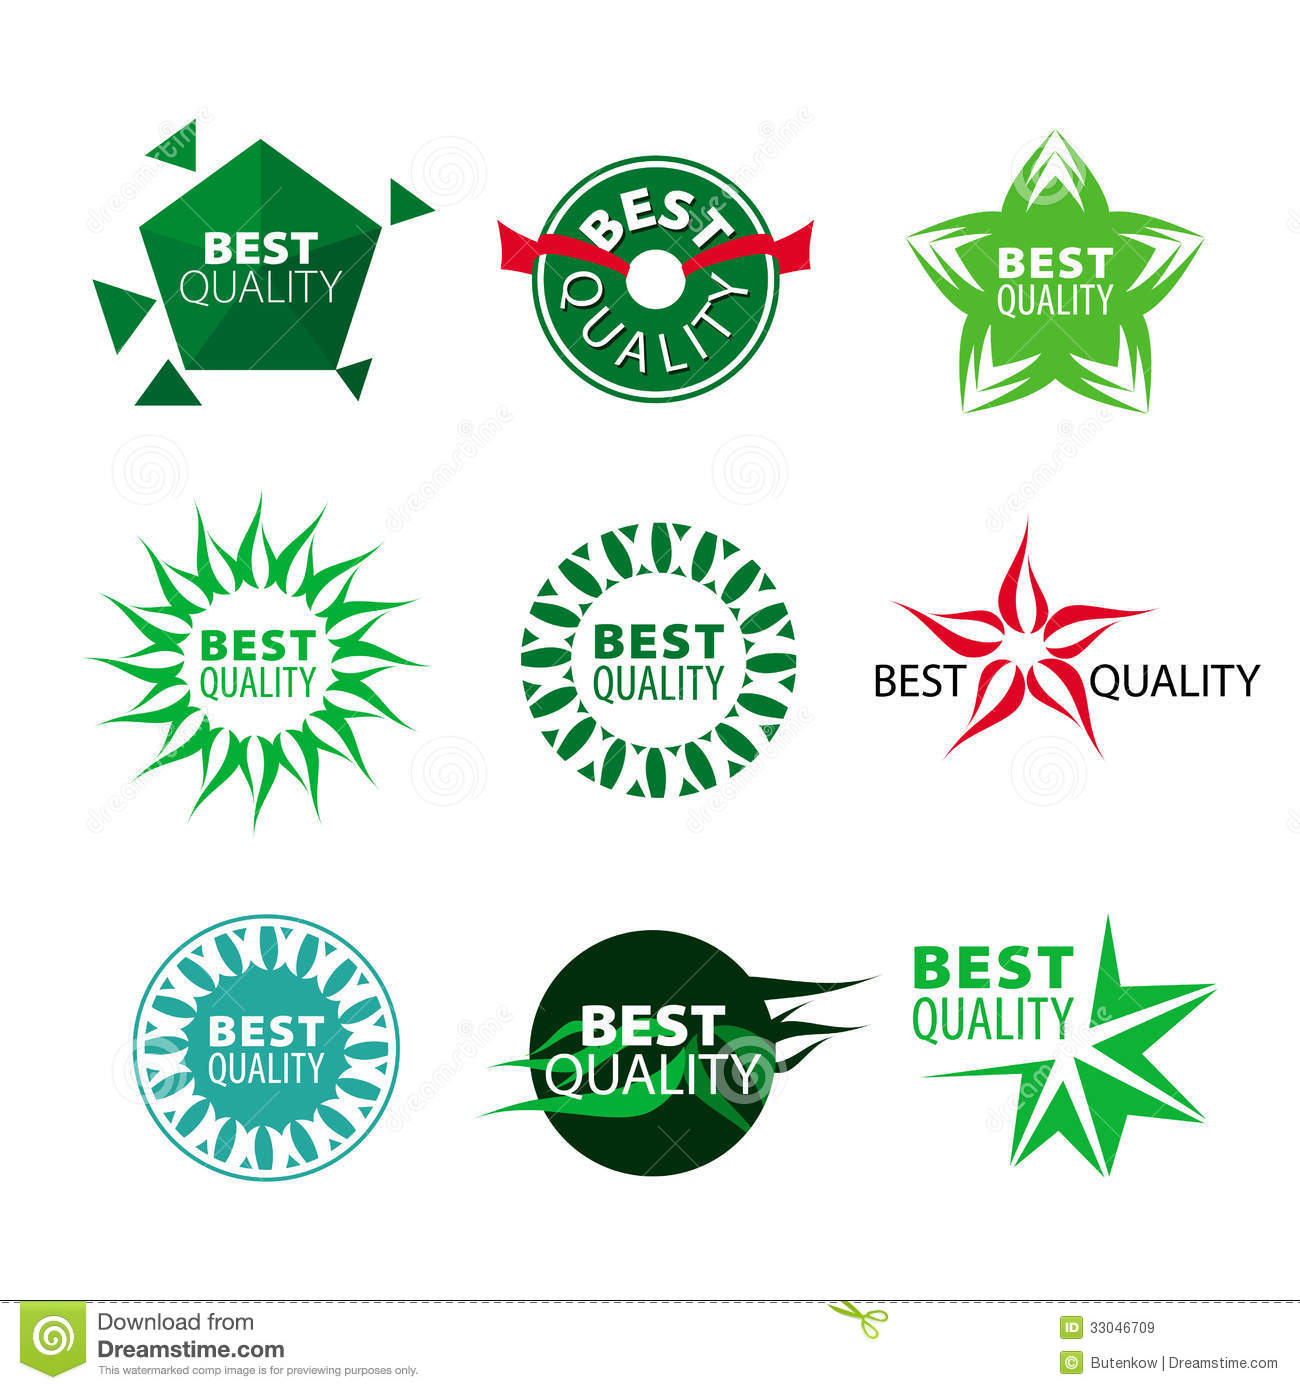 Vector Icons Best Quality Royalty Free Stock Images - Image: 33046709